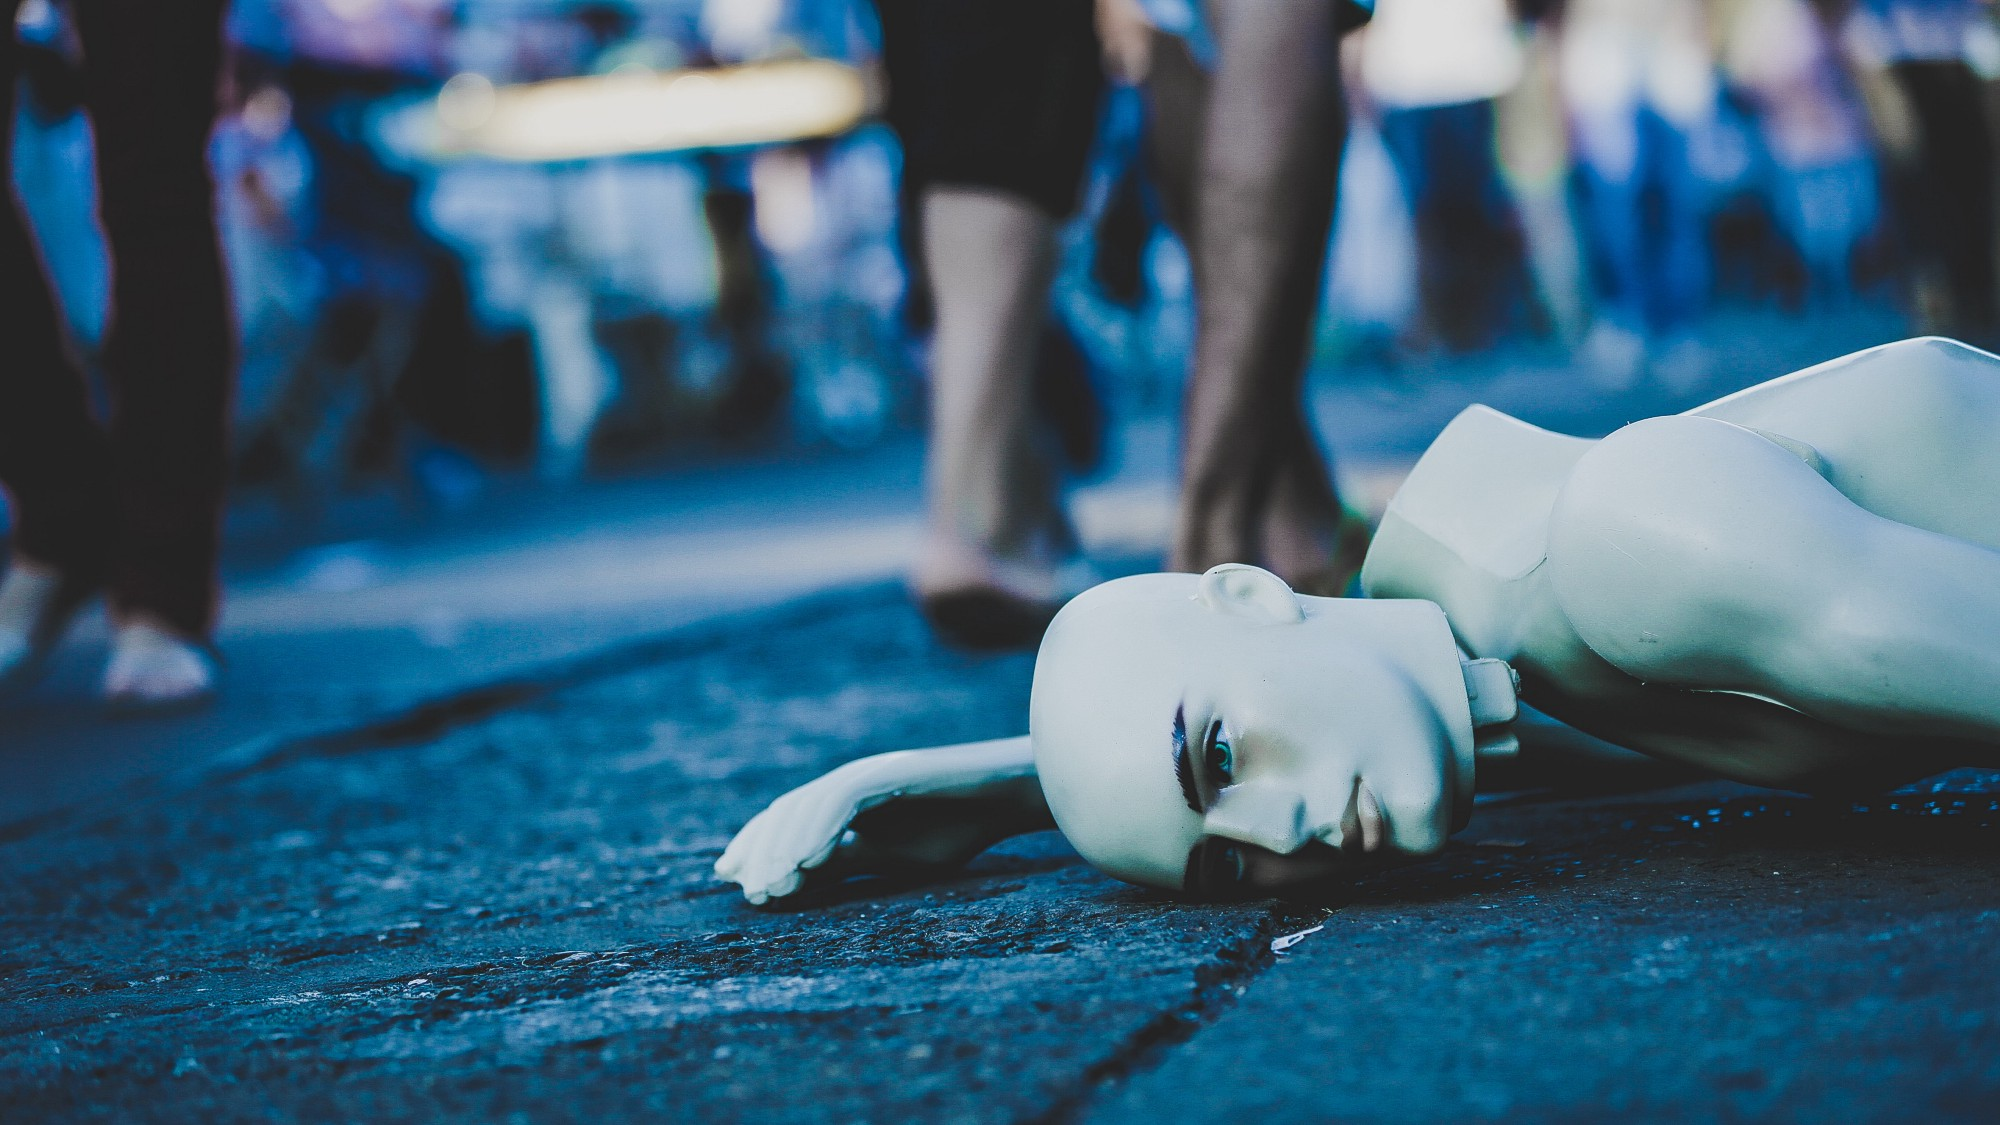 A broken manniquin lays on a sidewalk.